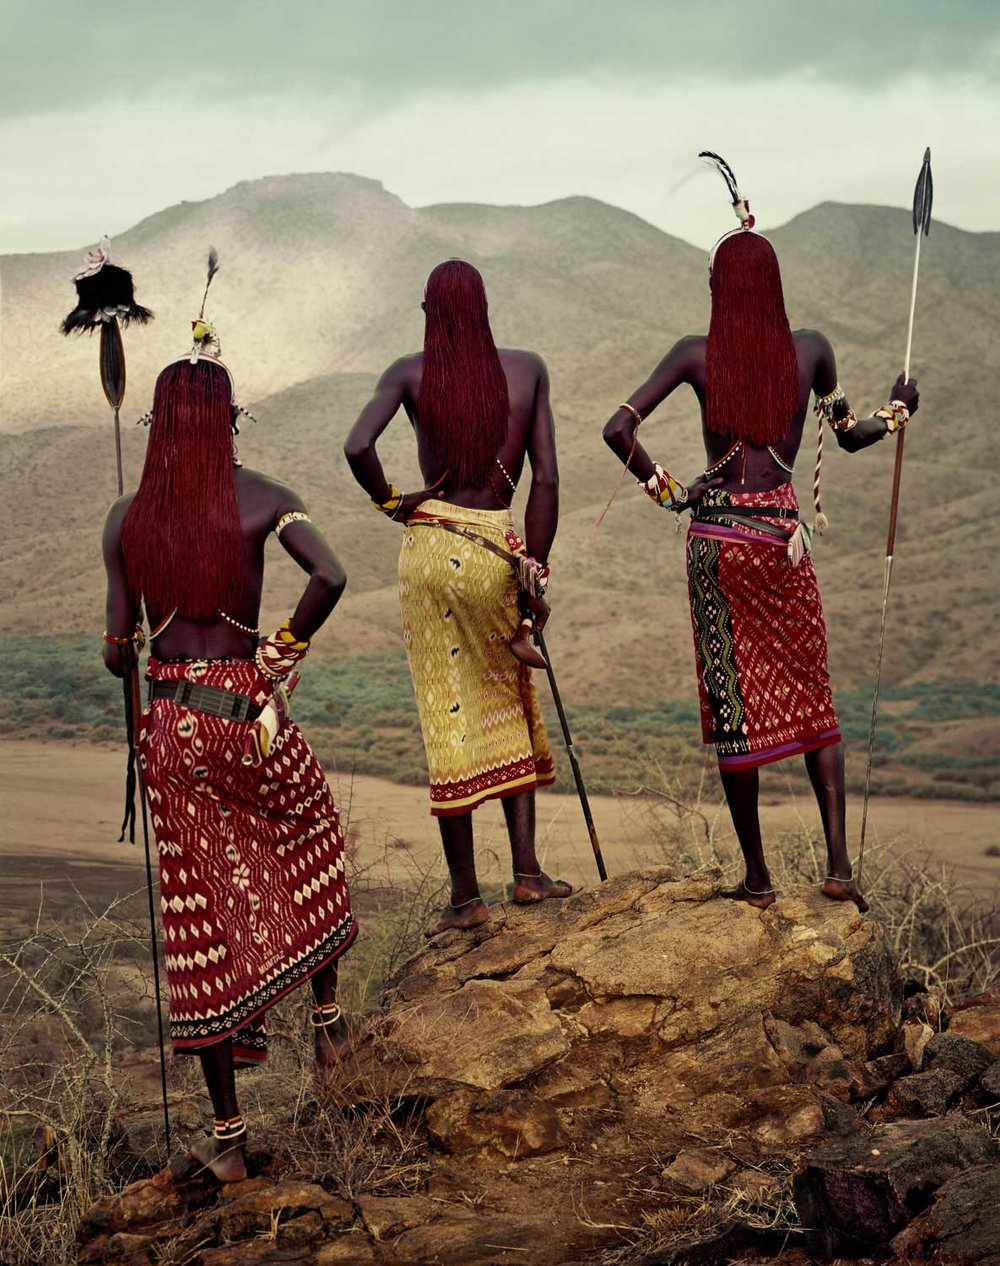 Jimmy-Nelson-Before-They-Pass-Away-Samburu-Tribe-Yellowtrace-03.jpg